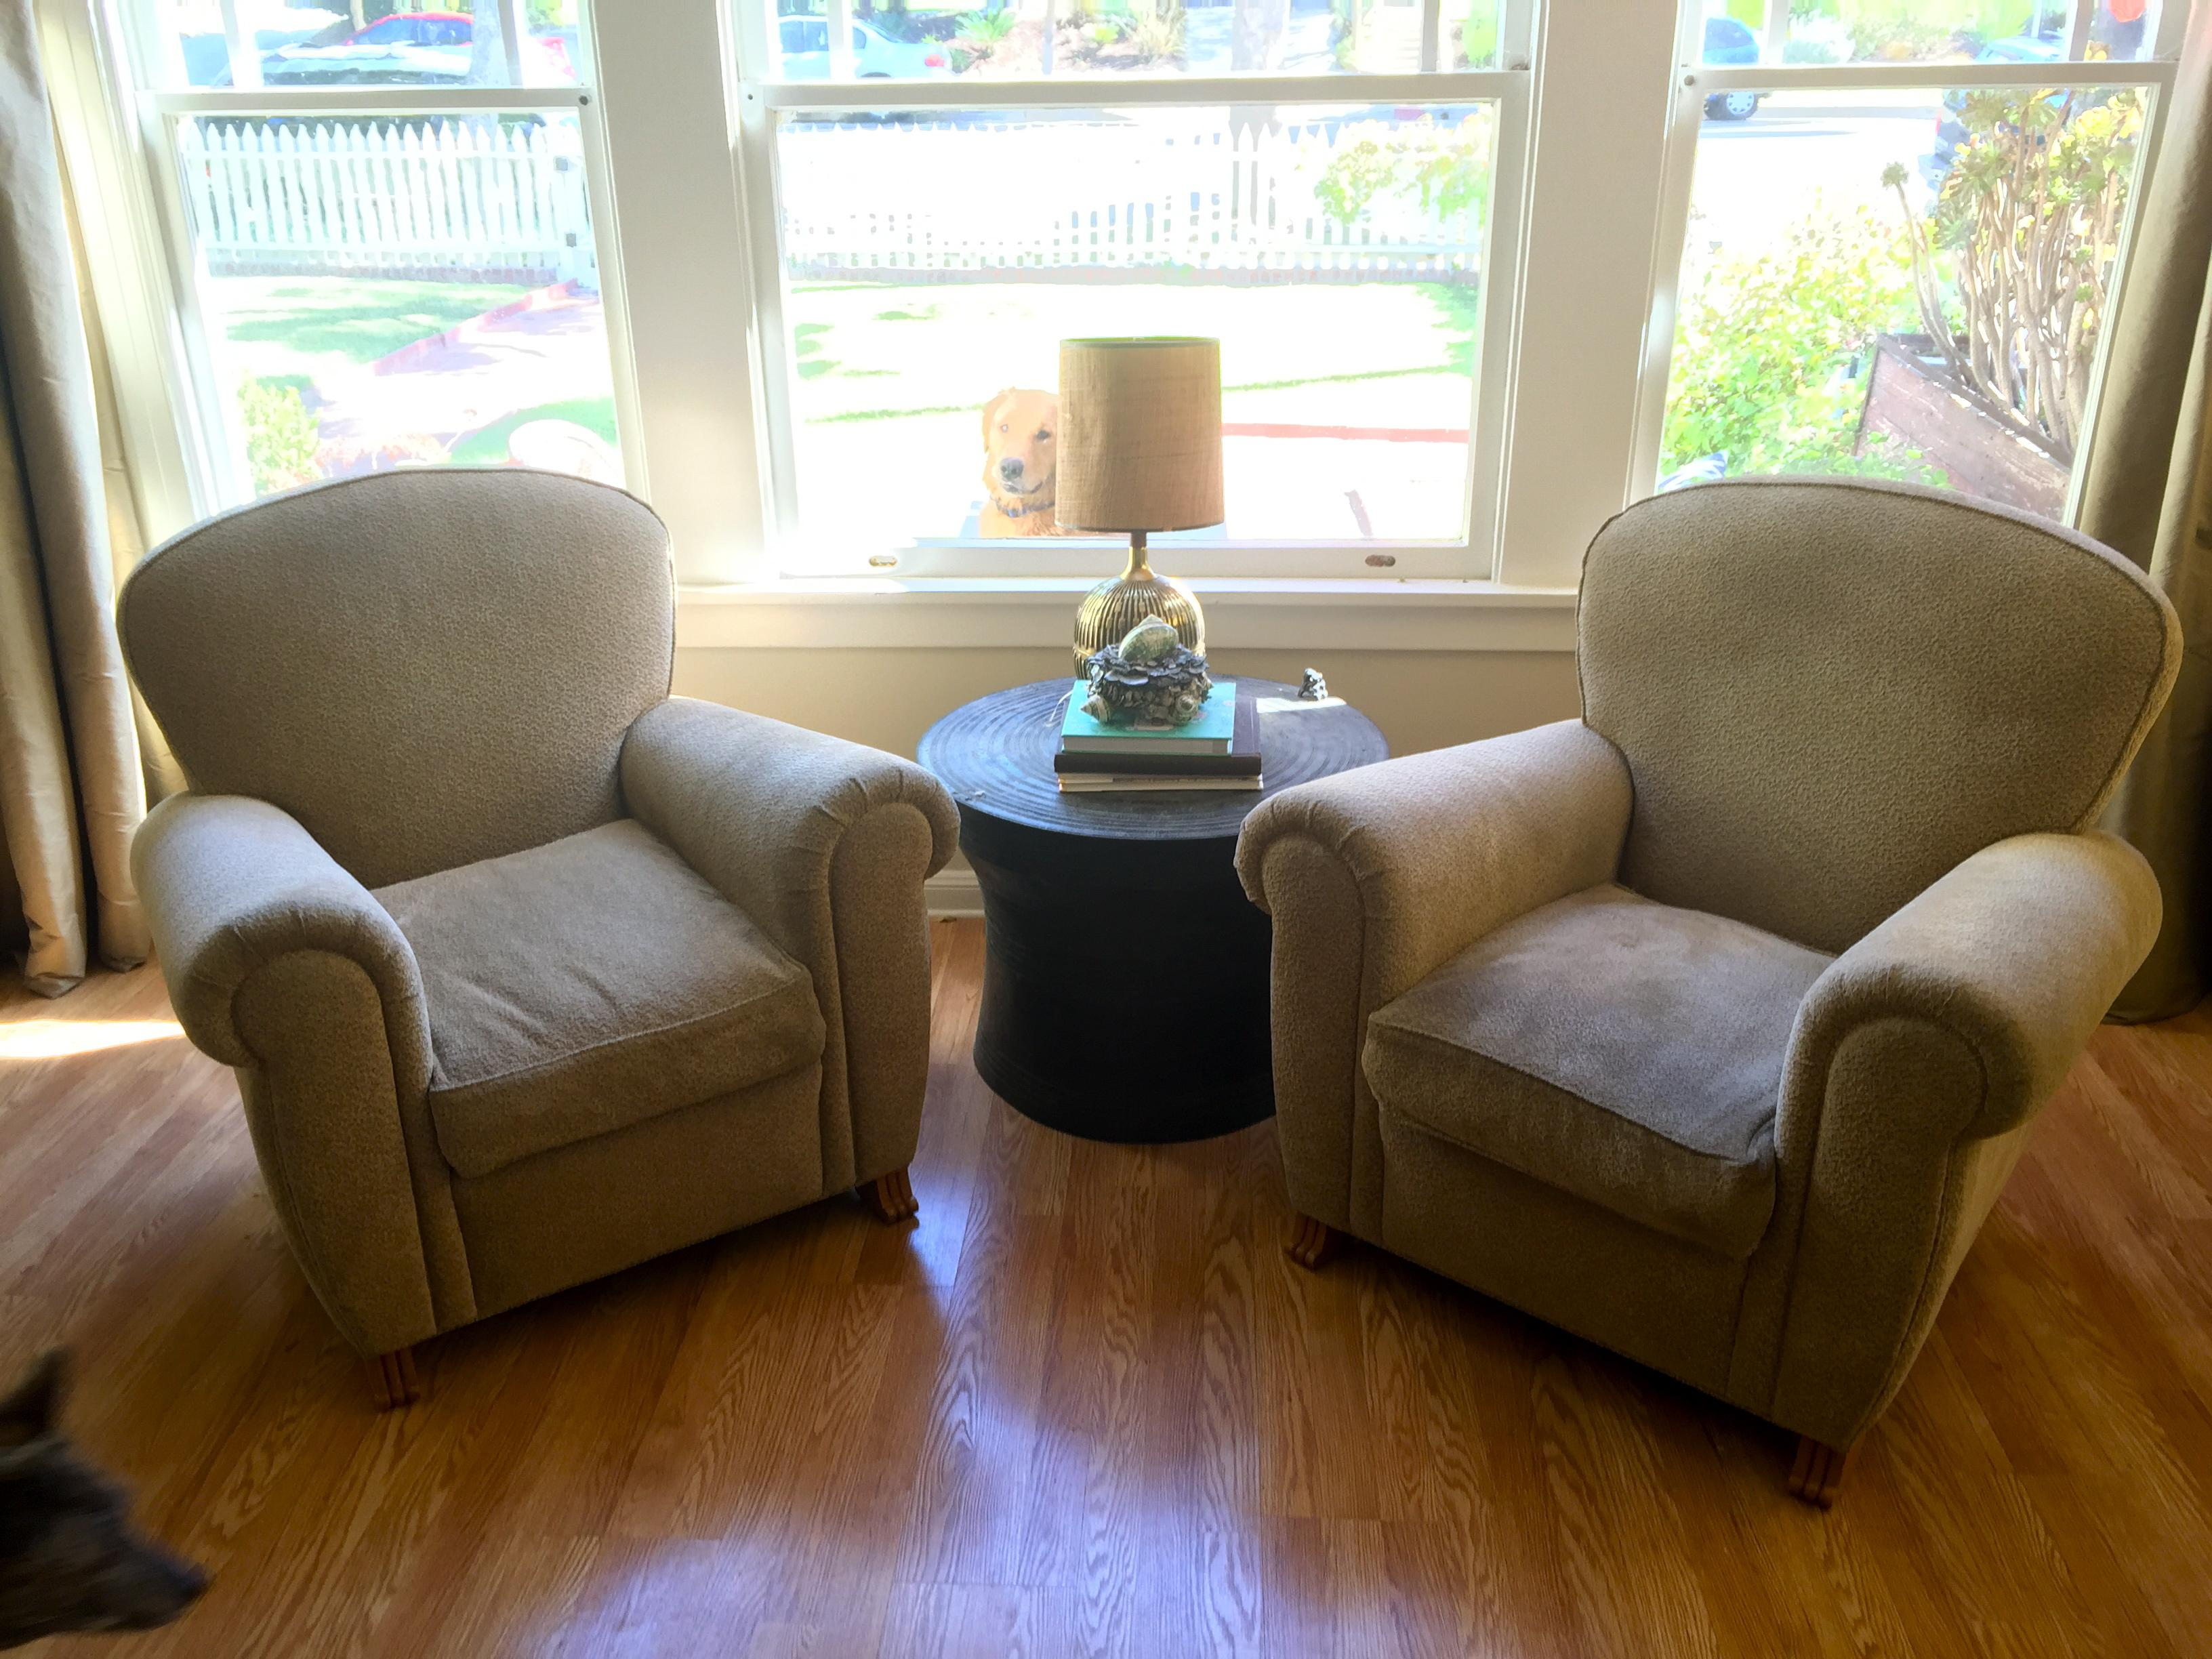 A handsome pair of custom made designer armchairs by A. RUDIN purchased at The Pacific  sc 1 st  Chairish & A. Rudin Club Chairs - A Pair | Chairish